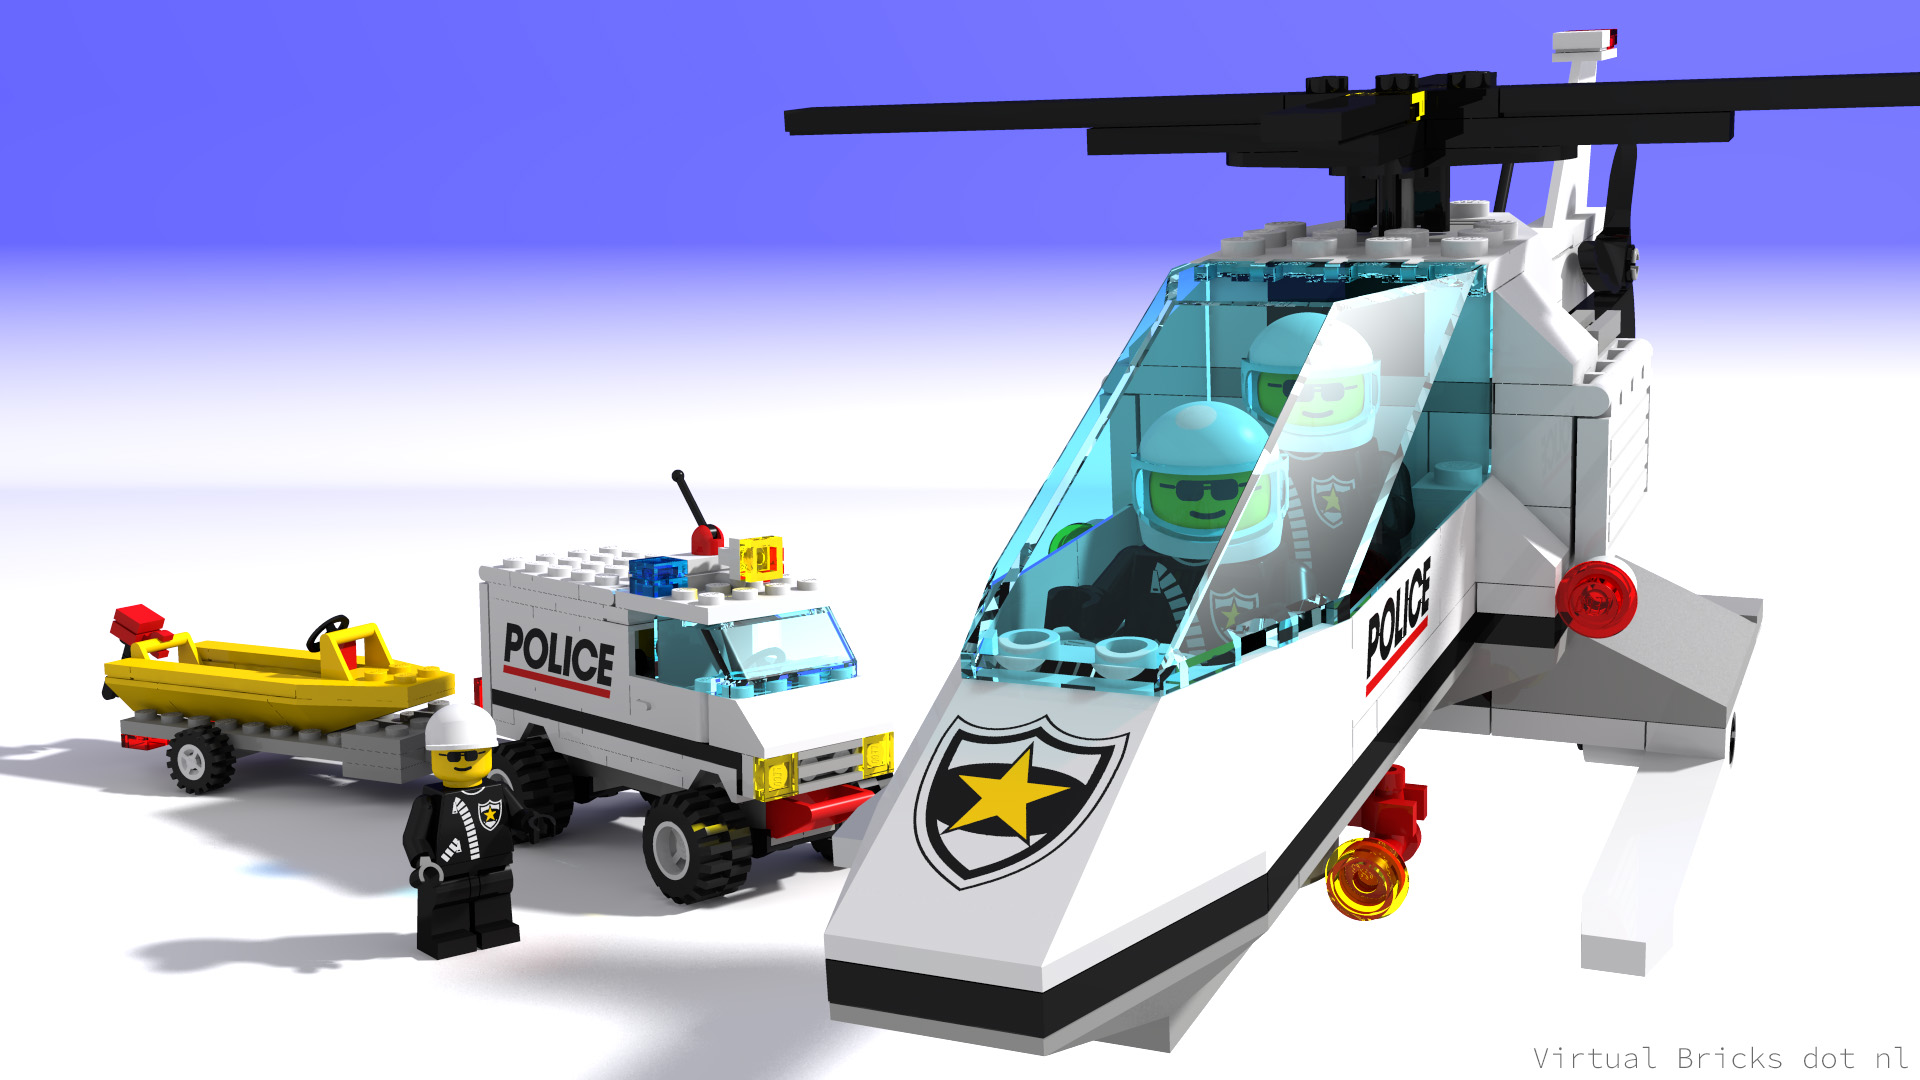 An image of the great Search and Rescue helicopter